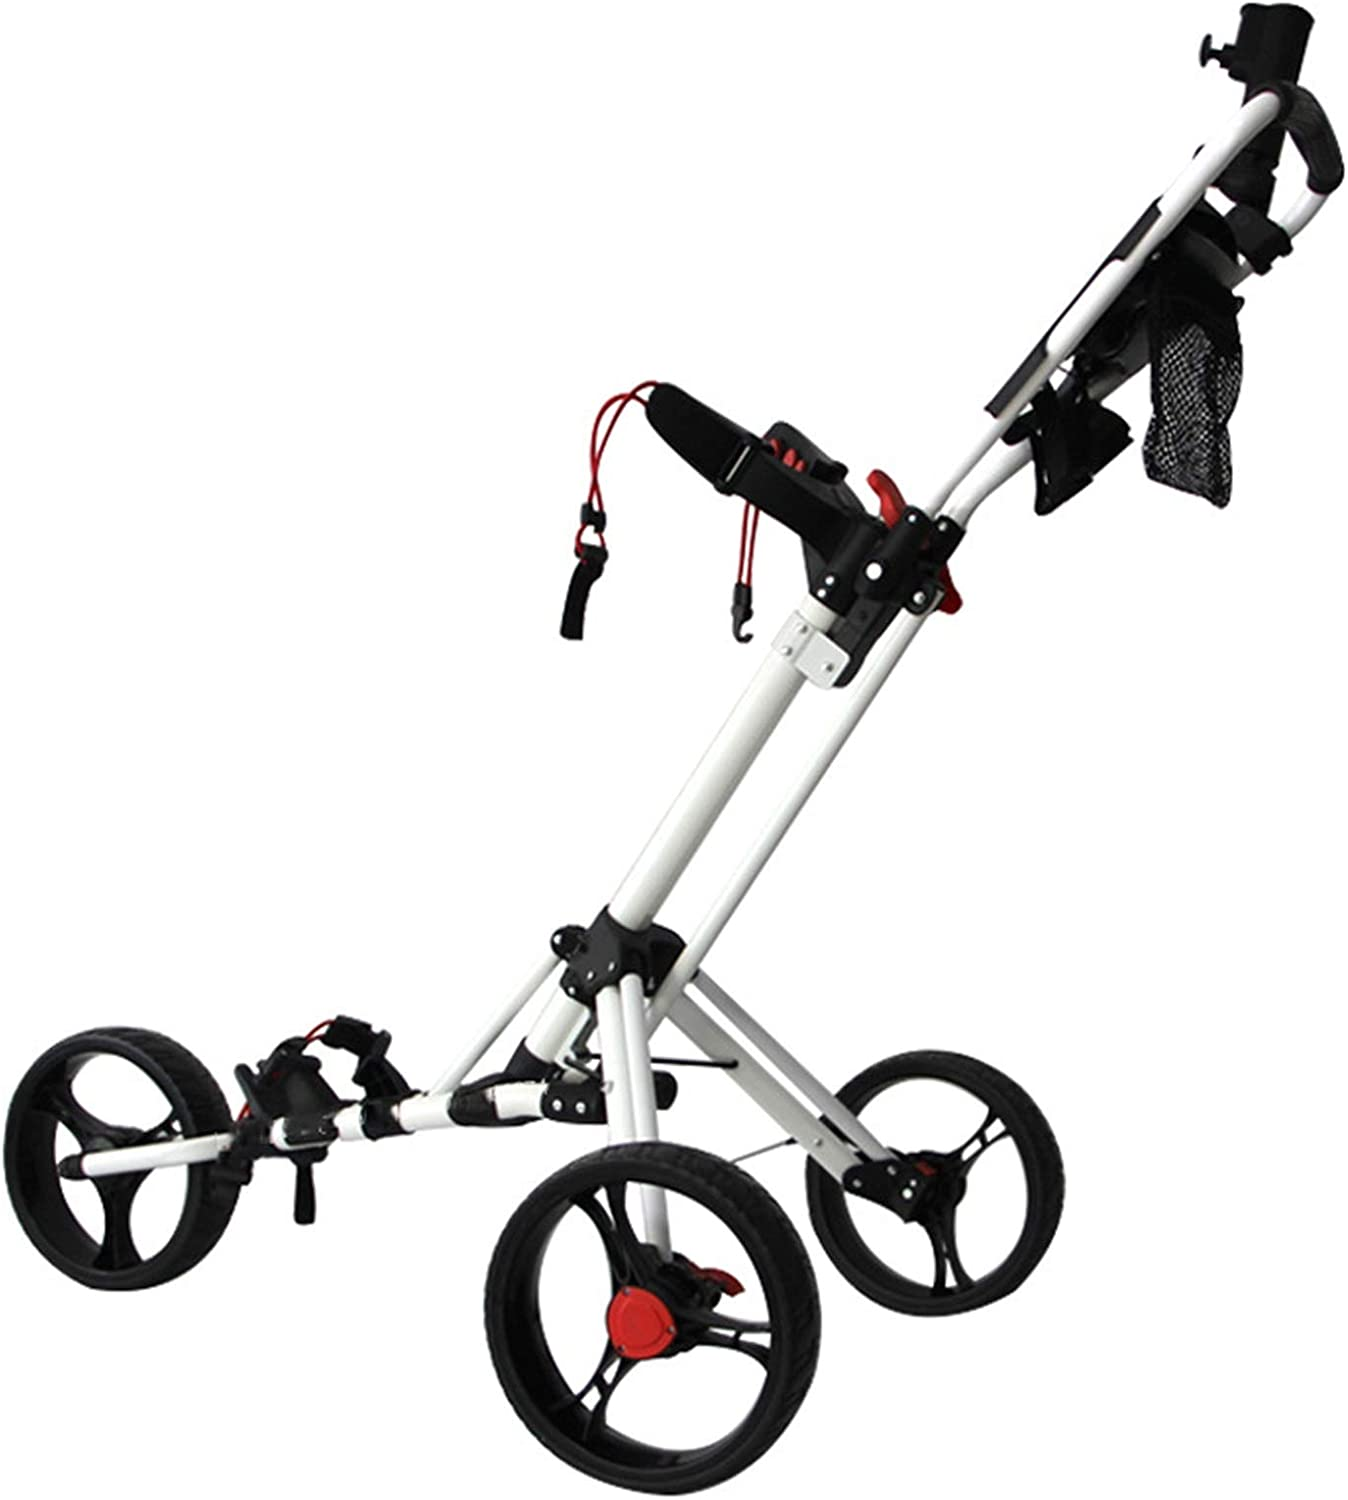 Spring new work one Today's only after another Golf Push Cart 3 Wheels Folding Lightweight Club Pull